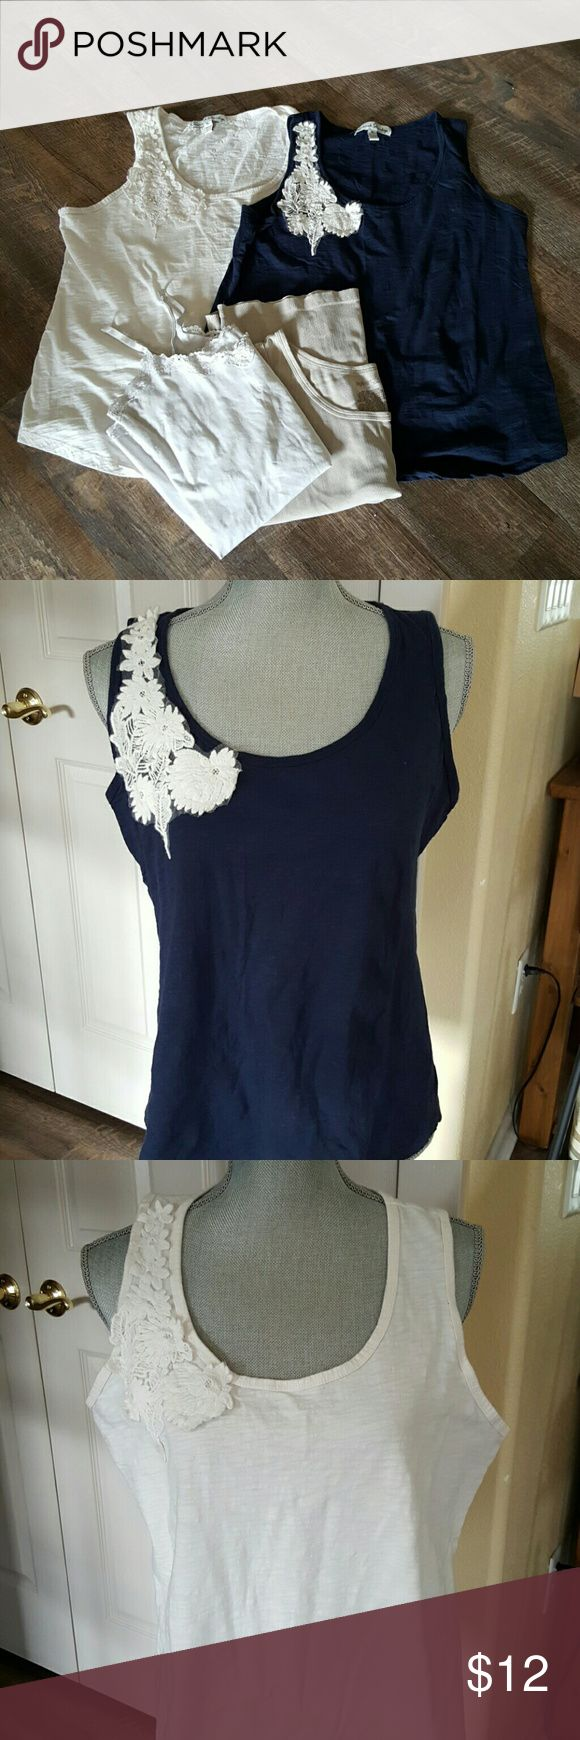 Bundle of tank tops Blue and white tank top have a flower embroidered applique on the right shoulder.  Size XL flowy fit. 100% cotton.  Made by French Laundry.    White cami has lace around the neckline and waist. Form fitting for the perfect layering look. Size L by Romy. Does not have a material tag.  Beige ribbed tank is size XL by St. Johns Bay. True to size and comfortable.  That perfect color that pairs well with other colors.  Bundle discount available. Nonsmoking home. All reasonable…